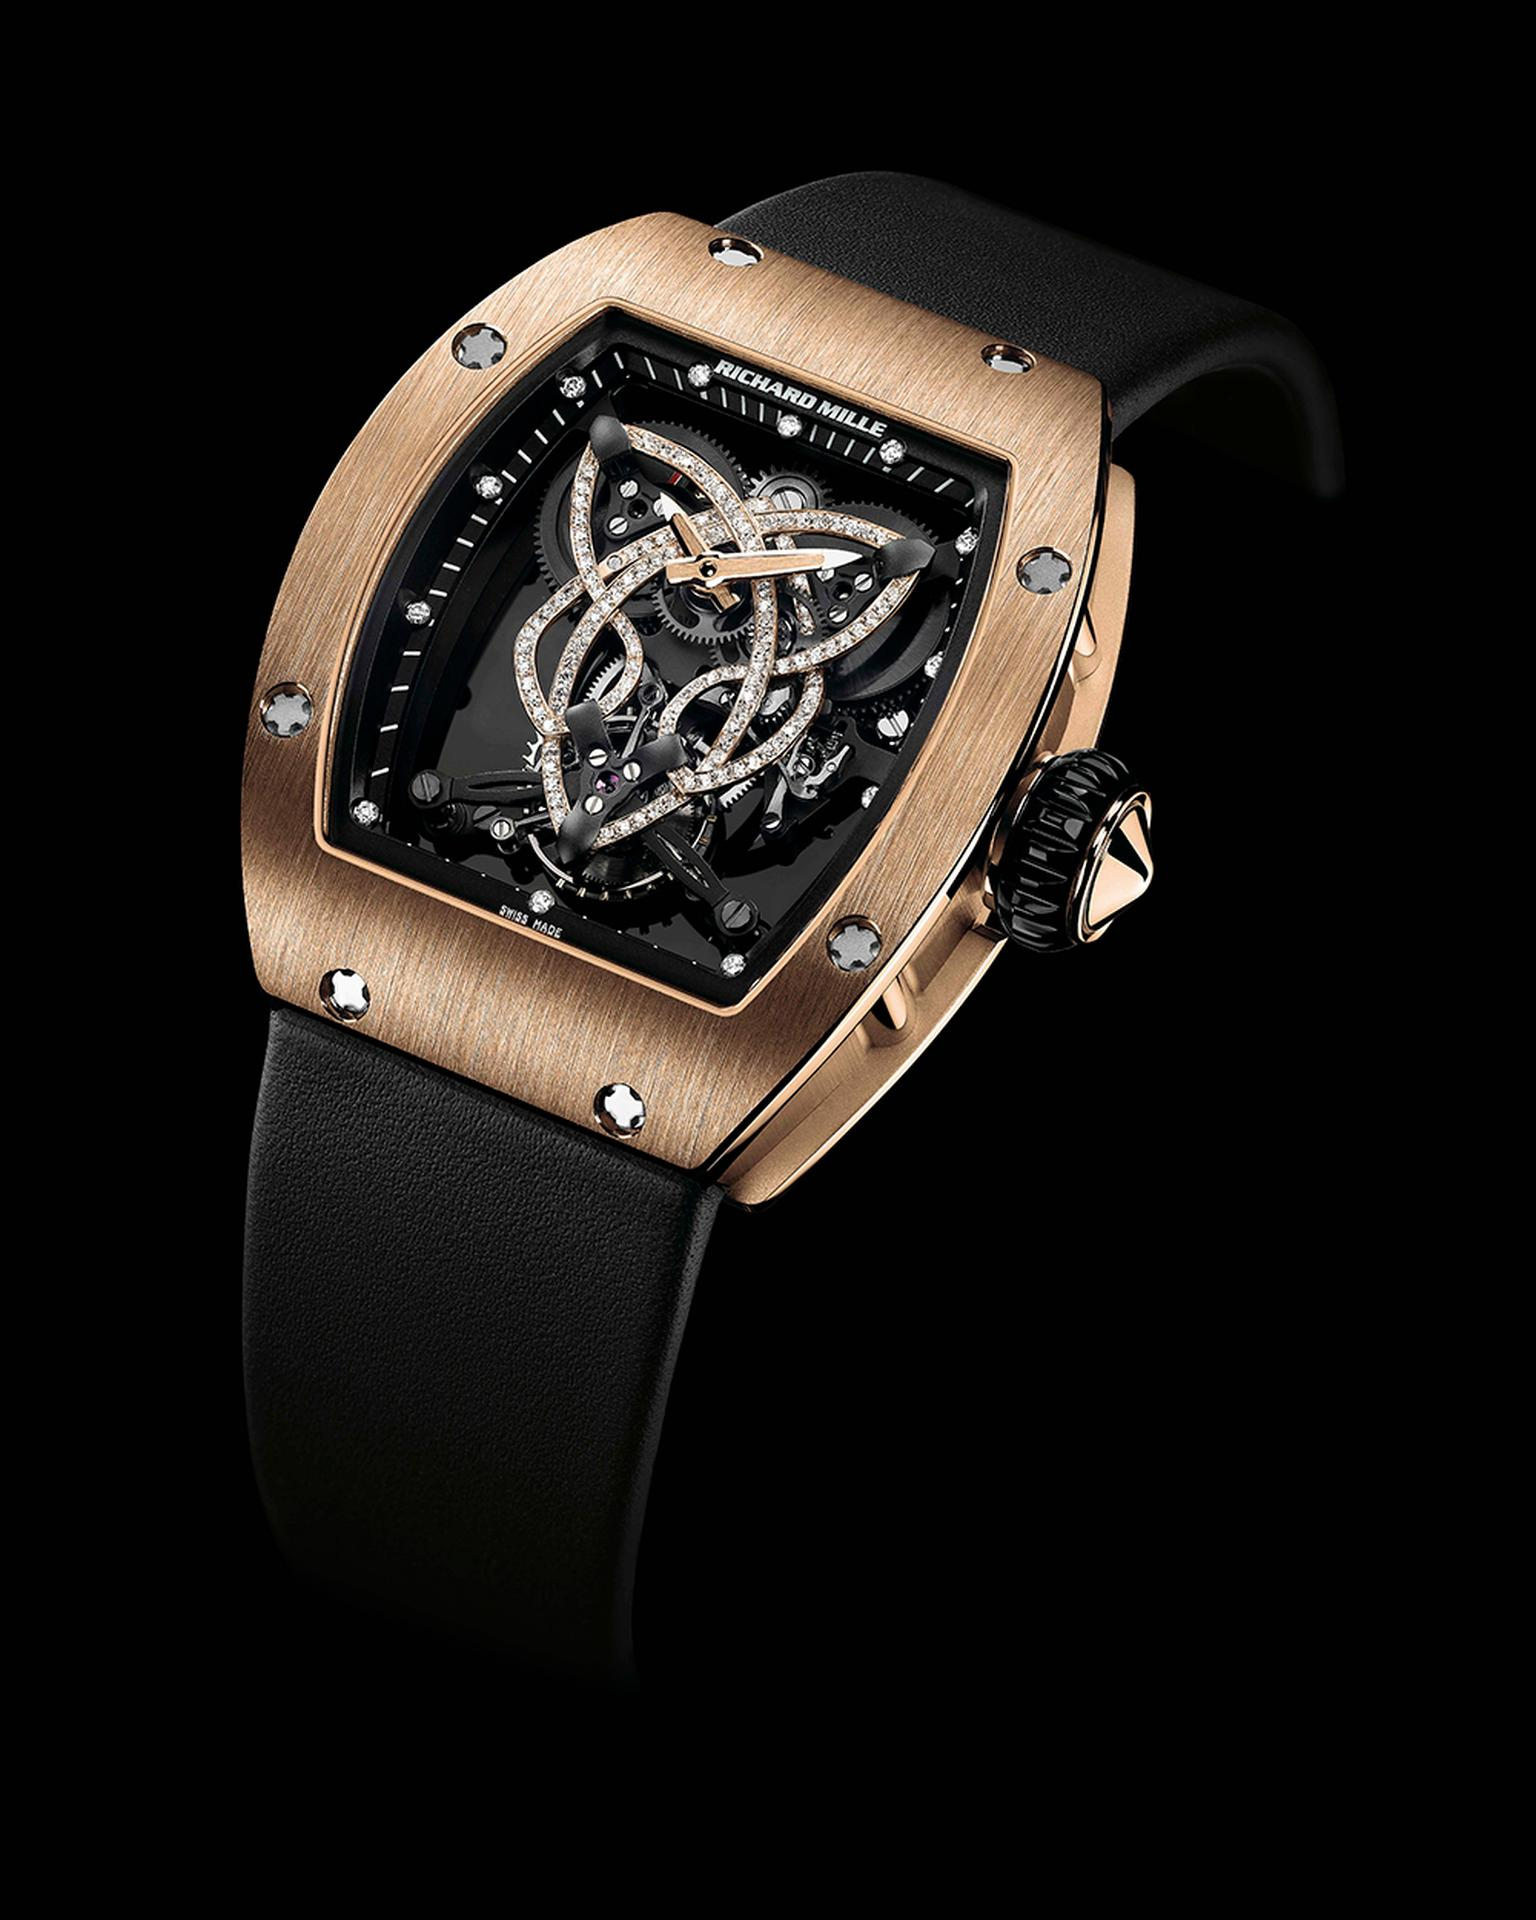 RichardMille019